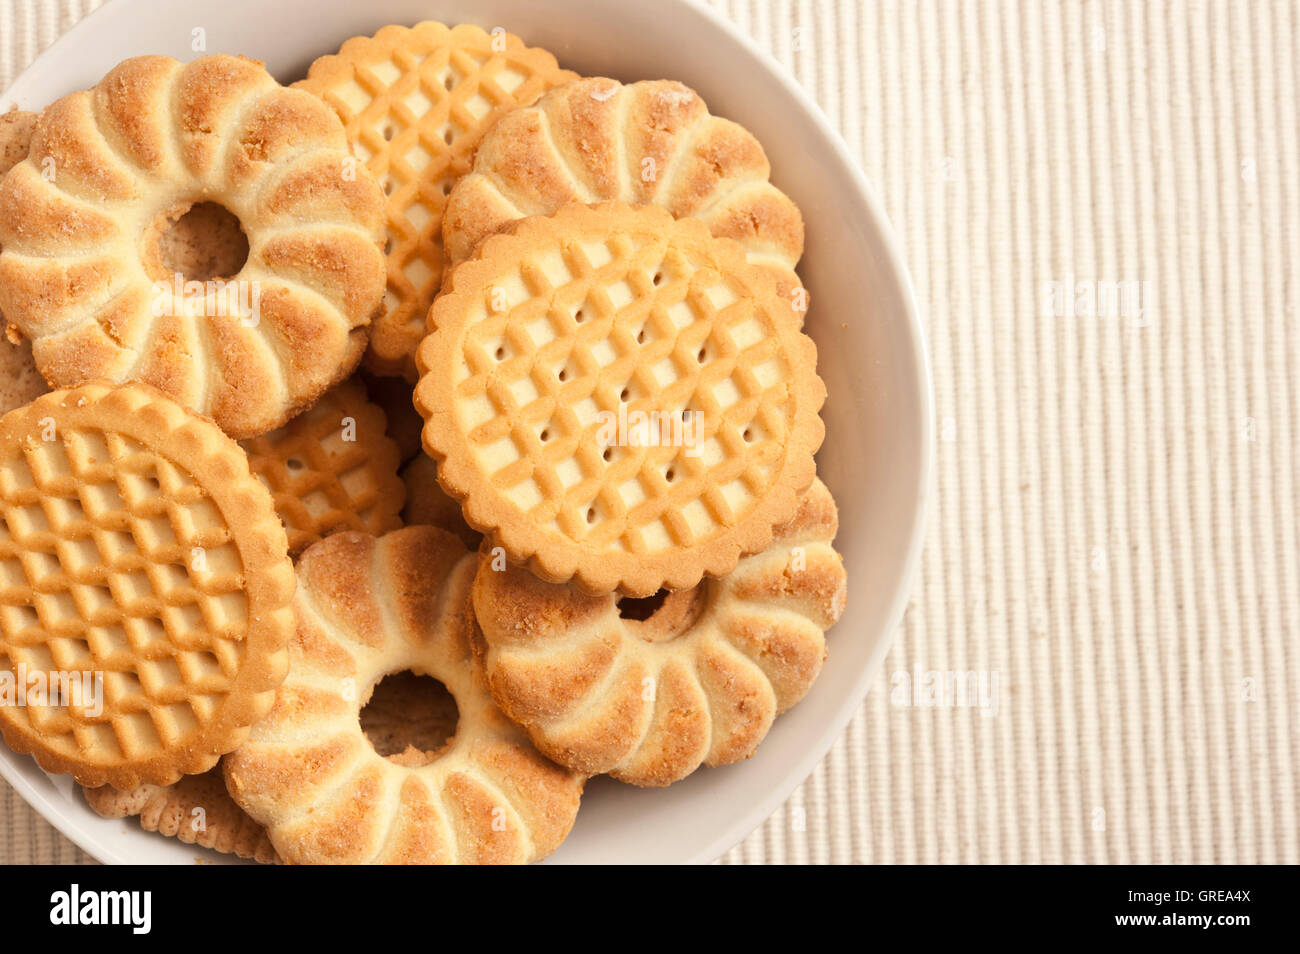 biscuits - Stock Image